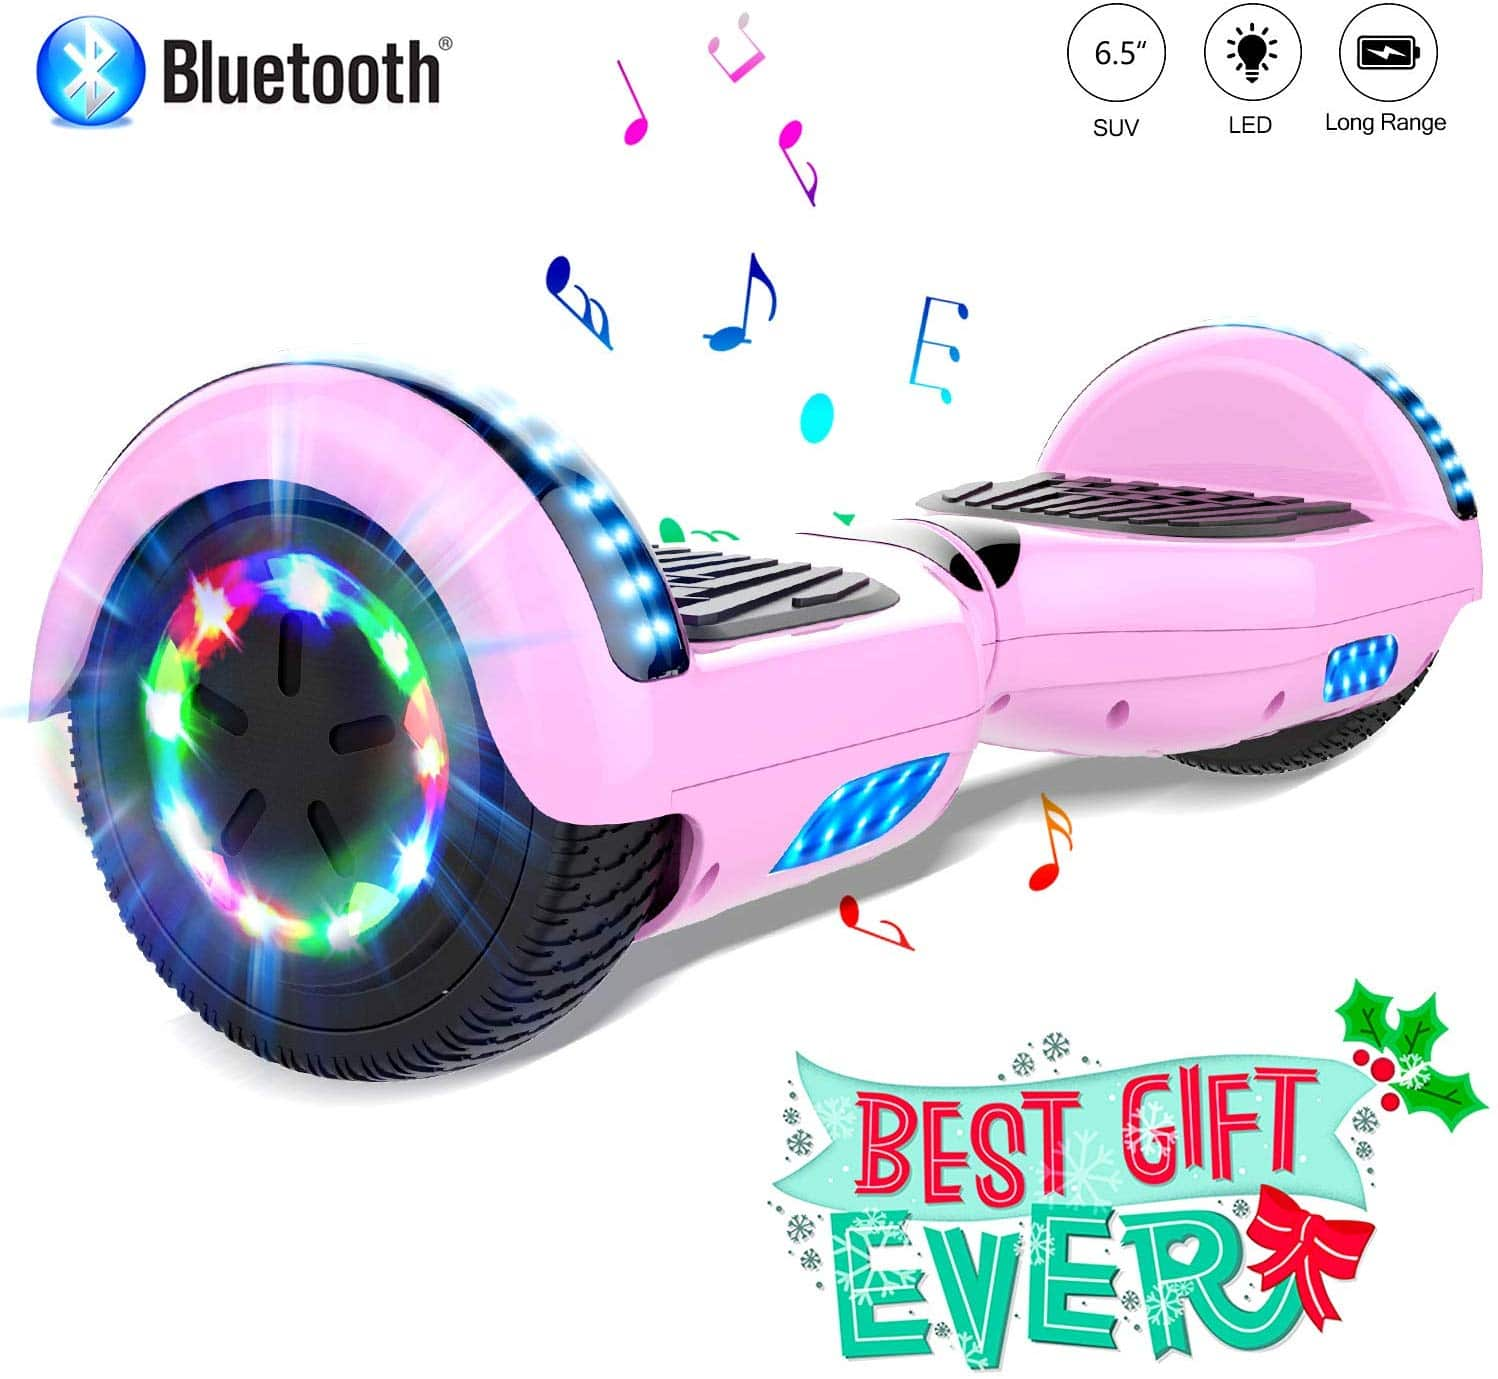 hoverboard rosa